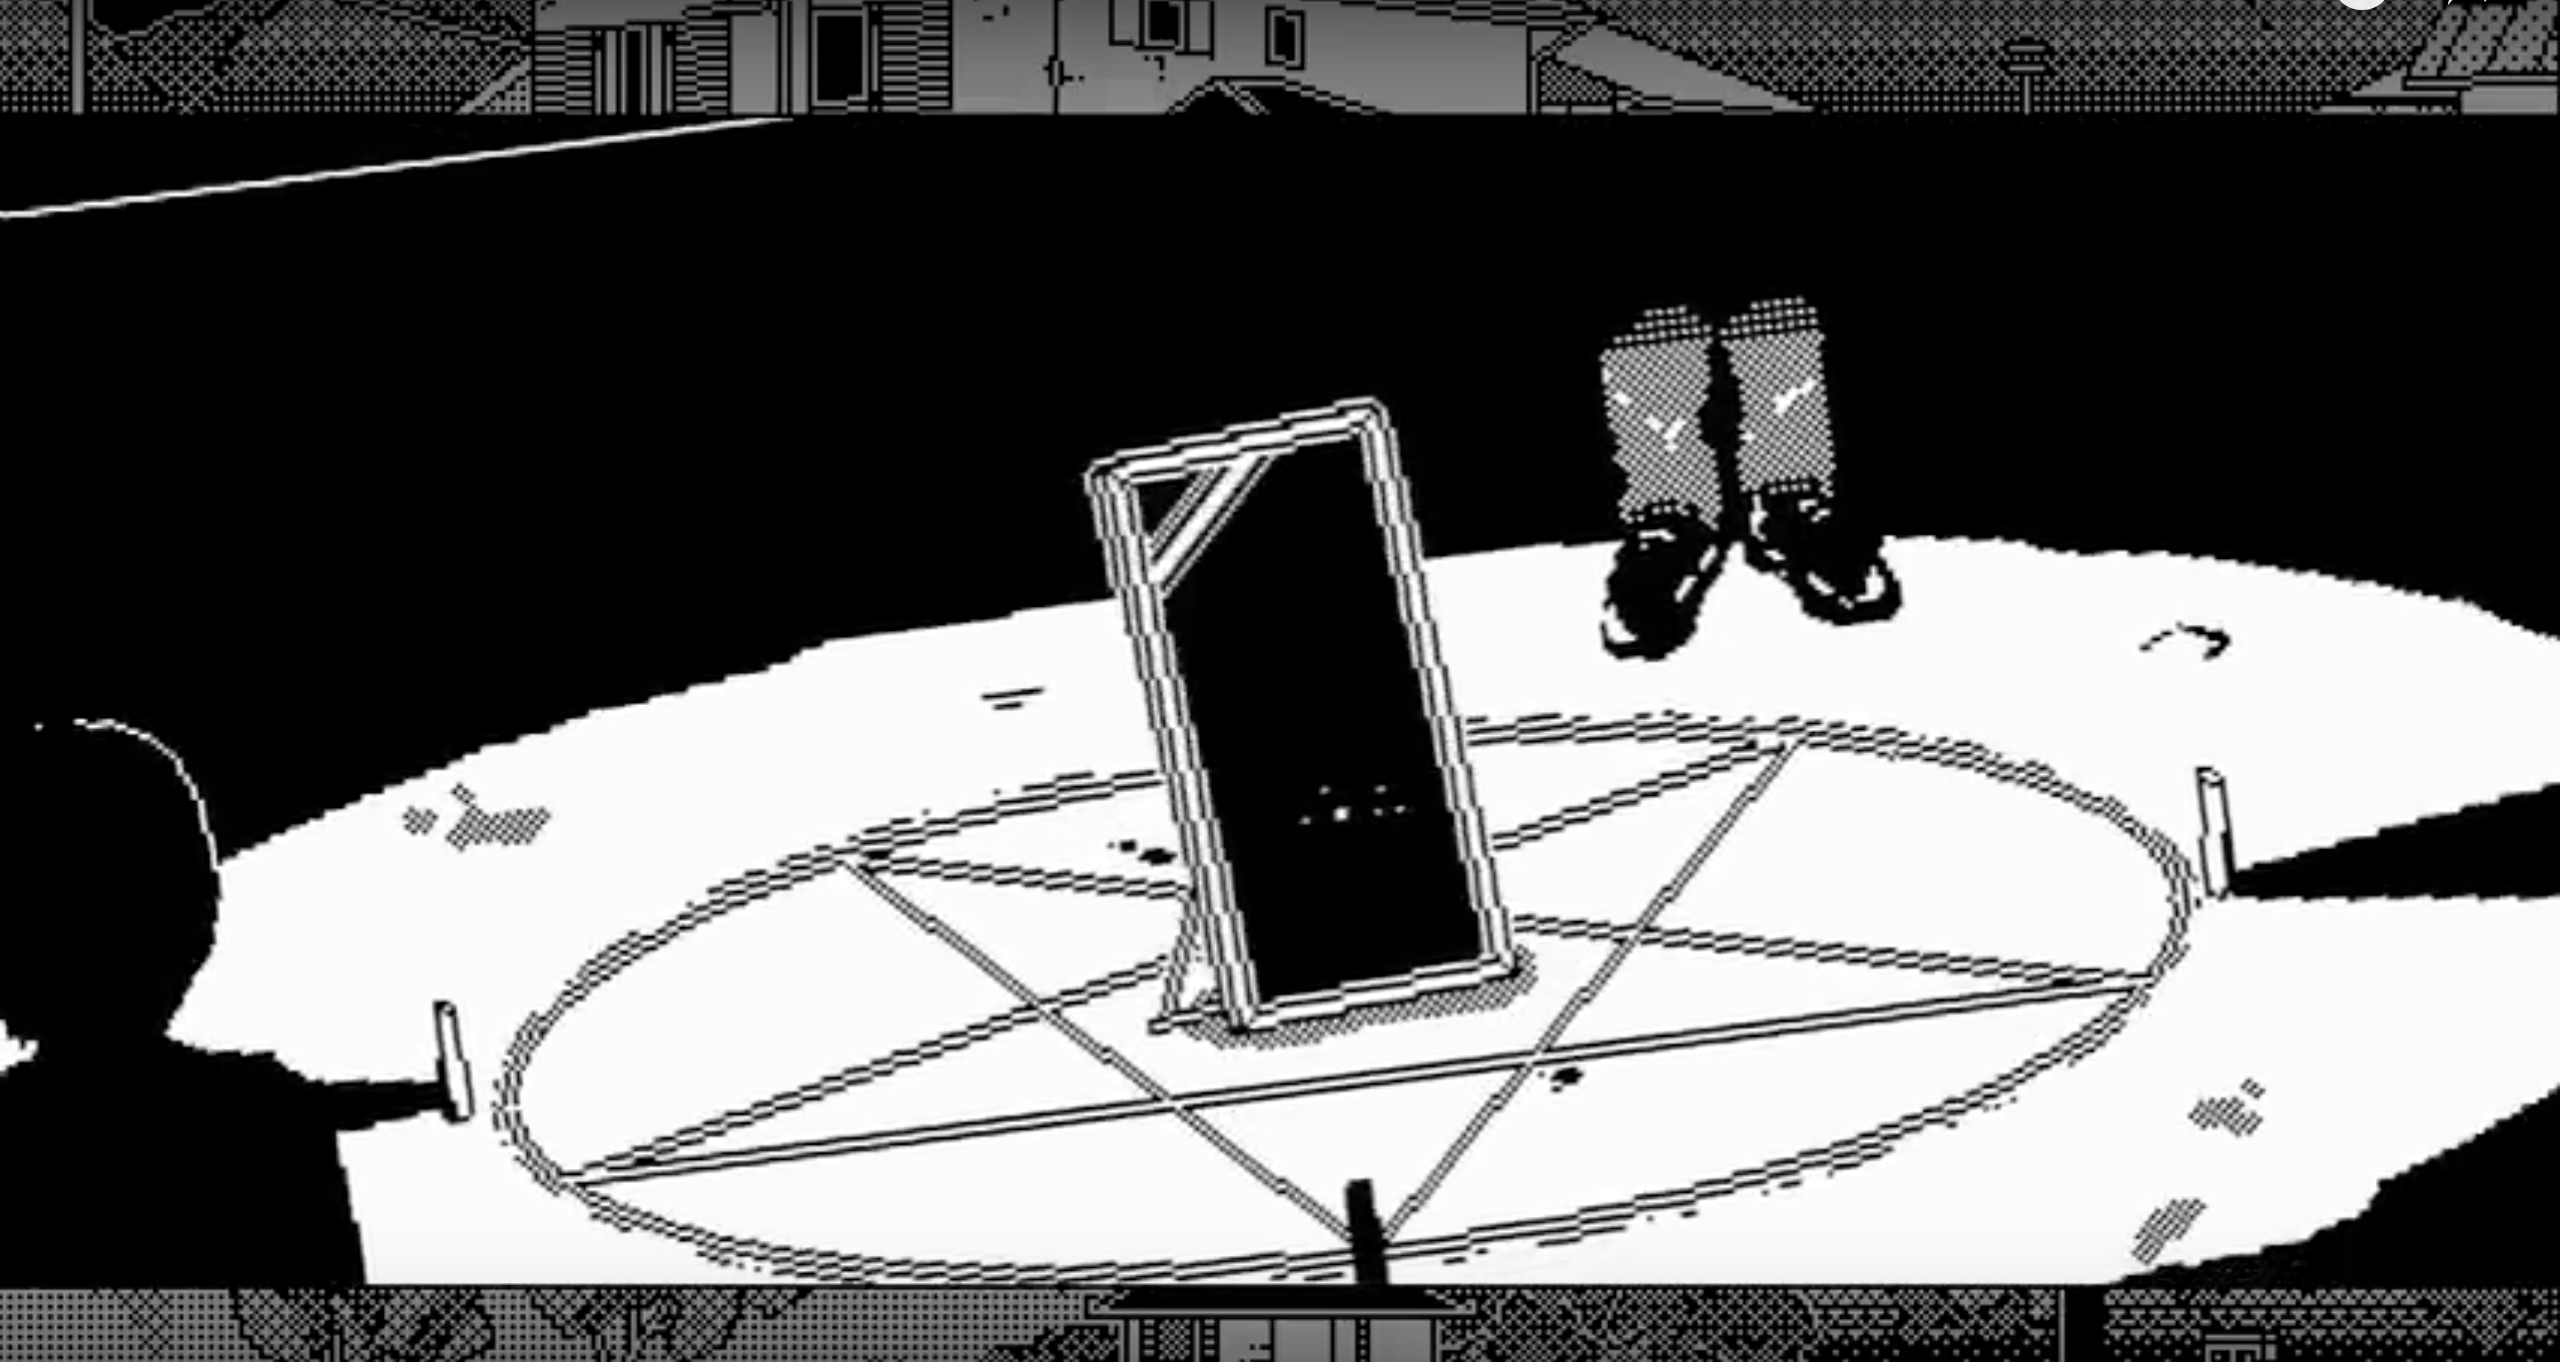 WORLD OF HORROR to crawl onto Switch, PS4 and Steam